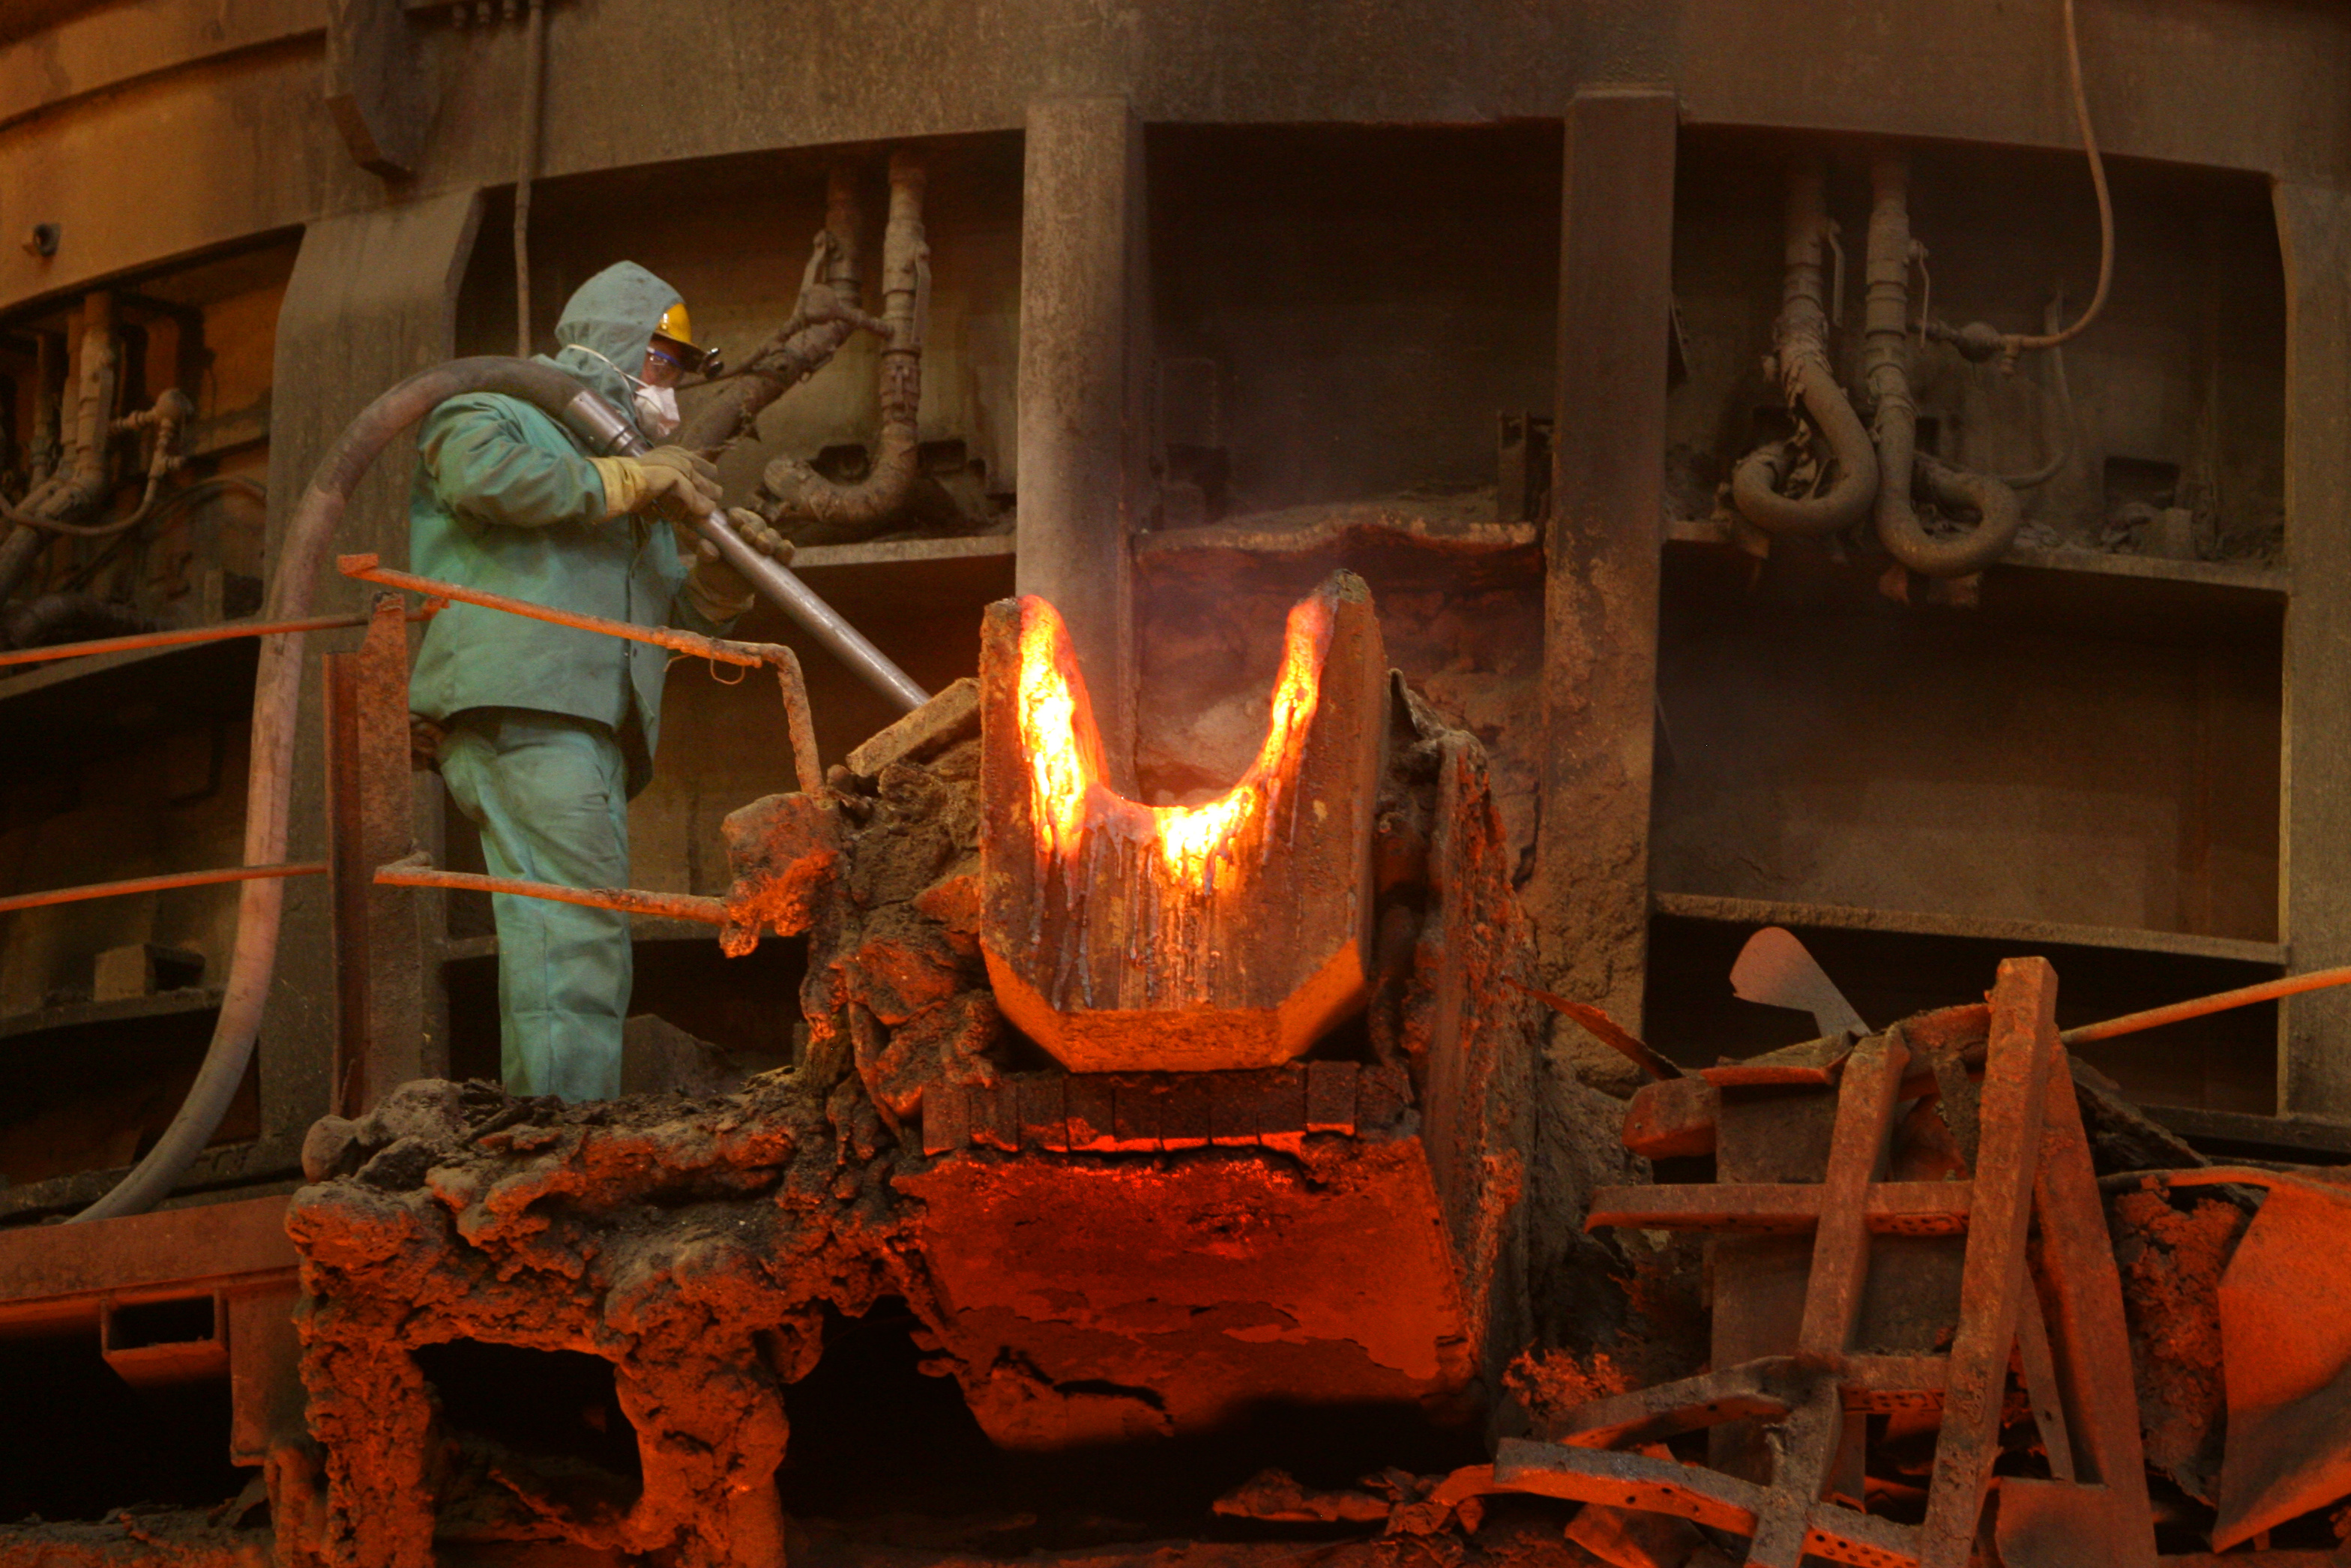 Steel Mill Electric Arc Furnace Accidents